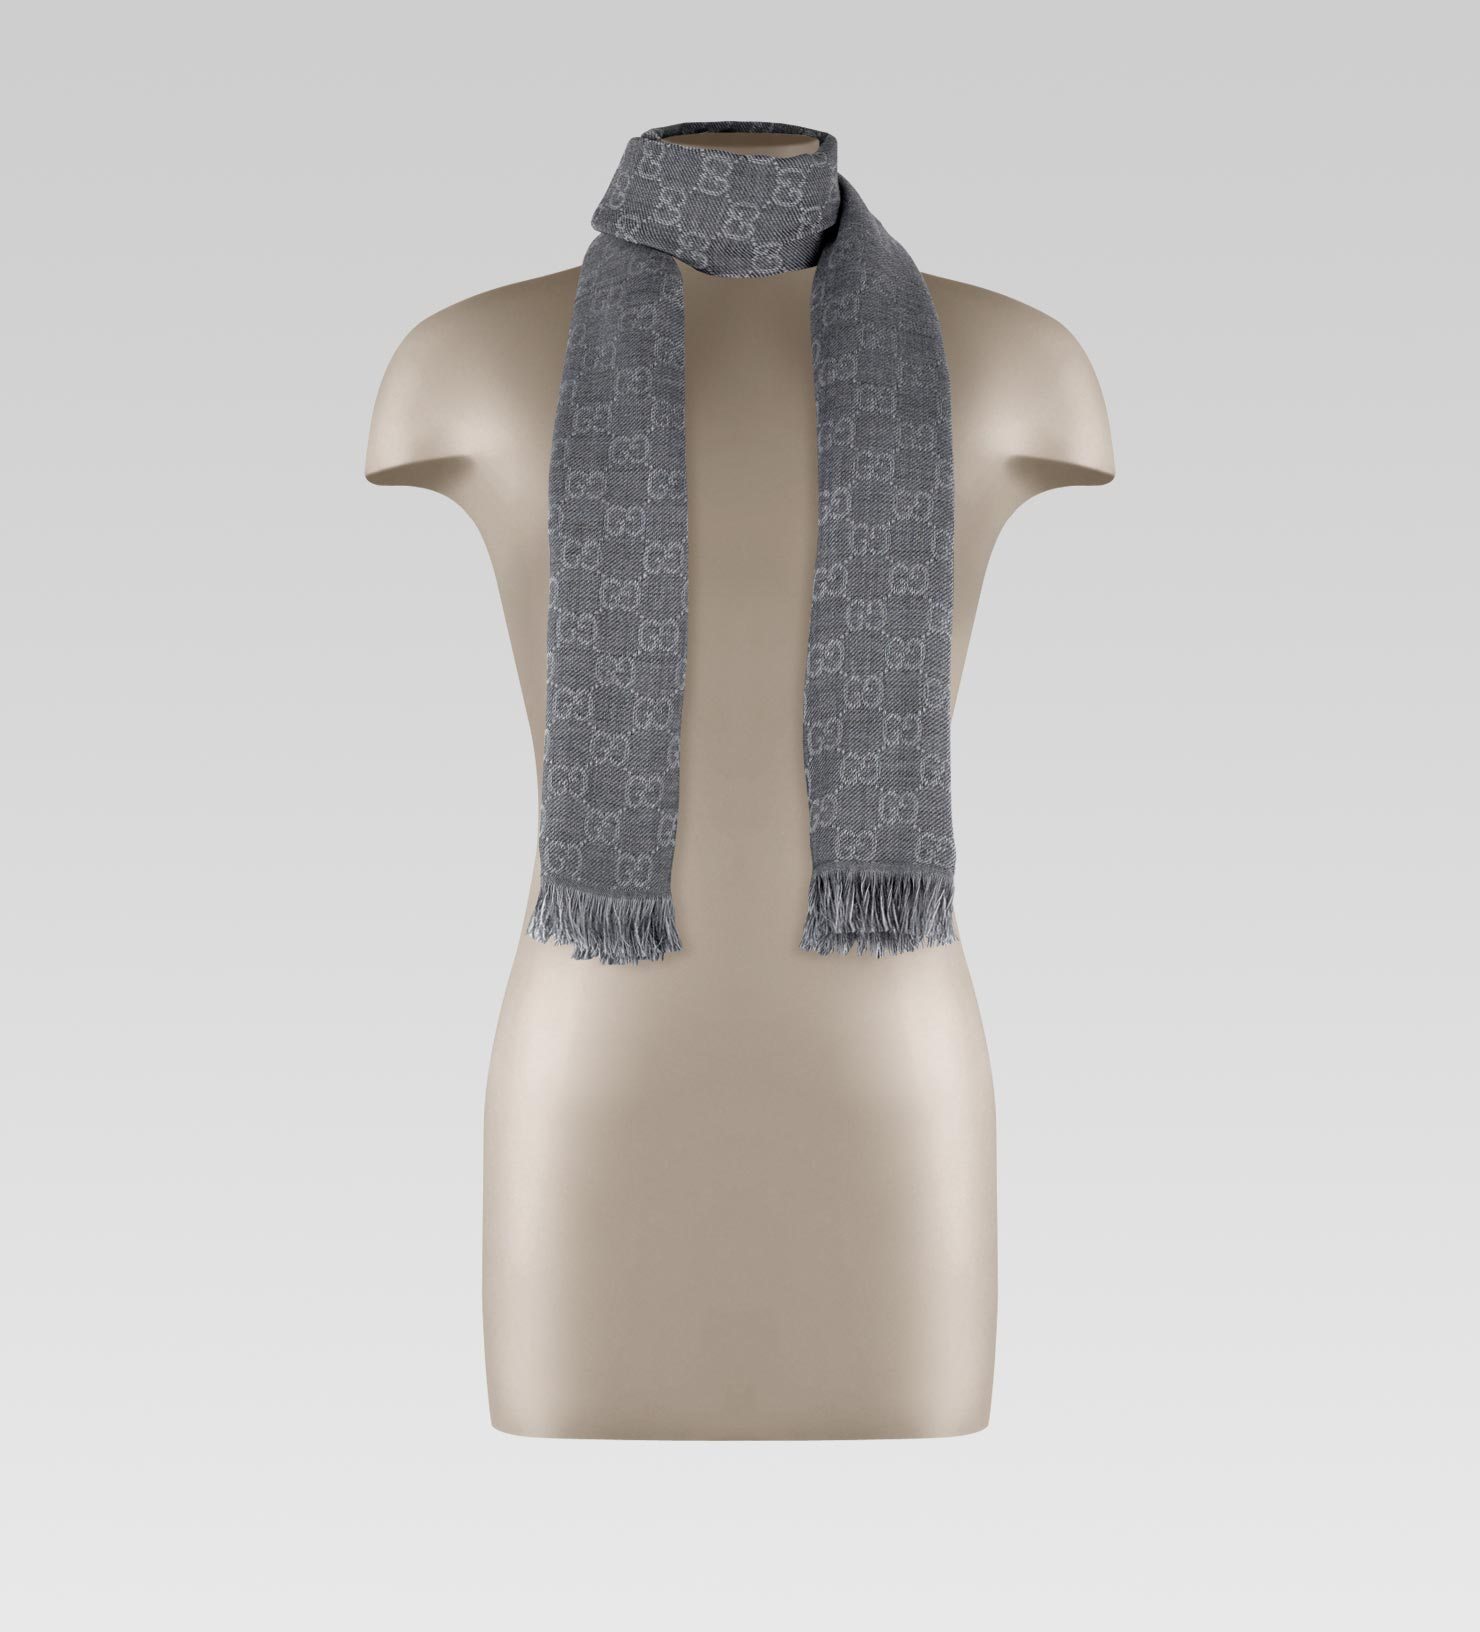 Lyst - Gucci Gg Jacquard Pattern Knit Scarf With Fringe in Gray for Men 6ef4c56ad85